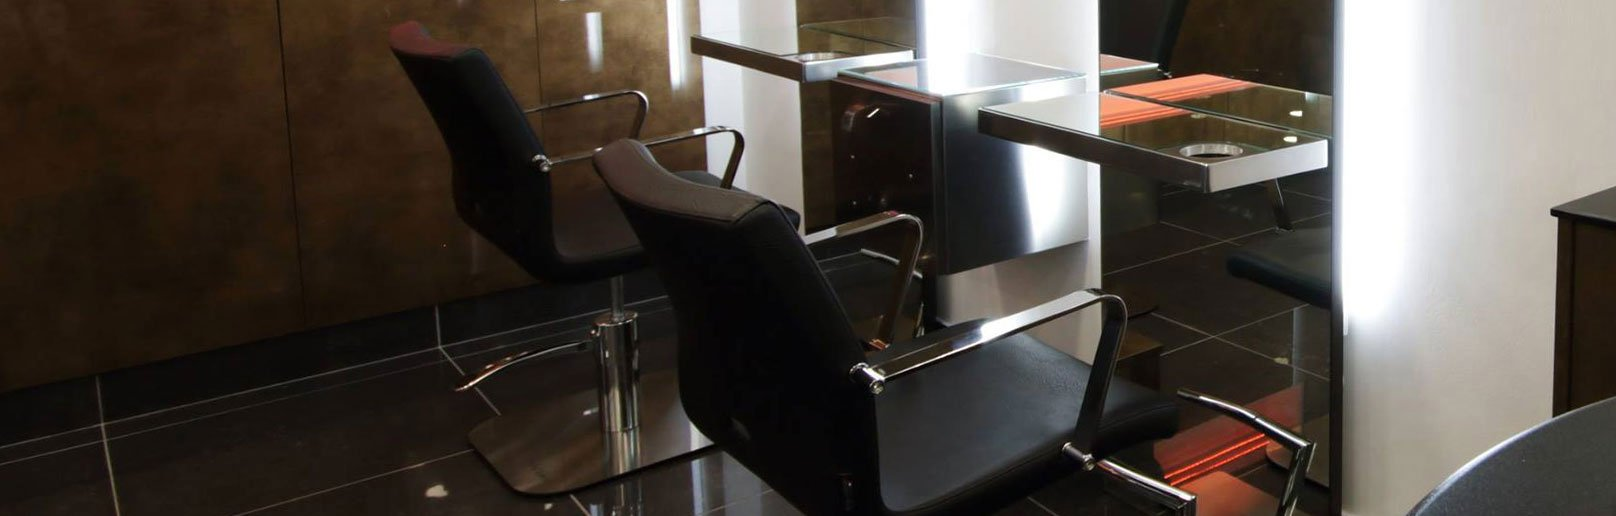 Forresters Wallingford hair salon interior view 3